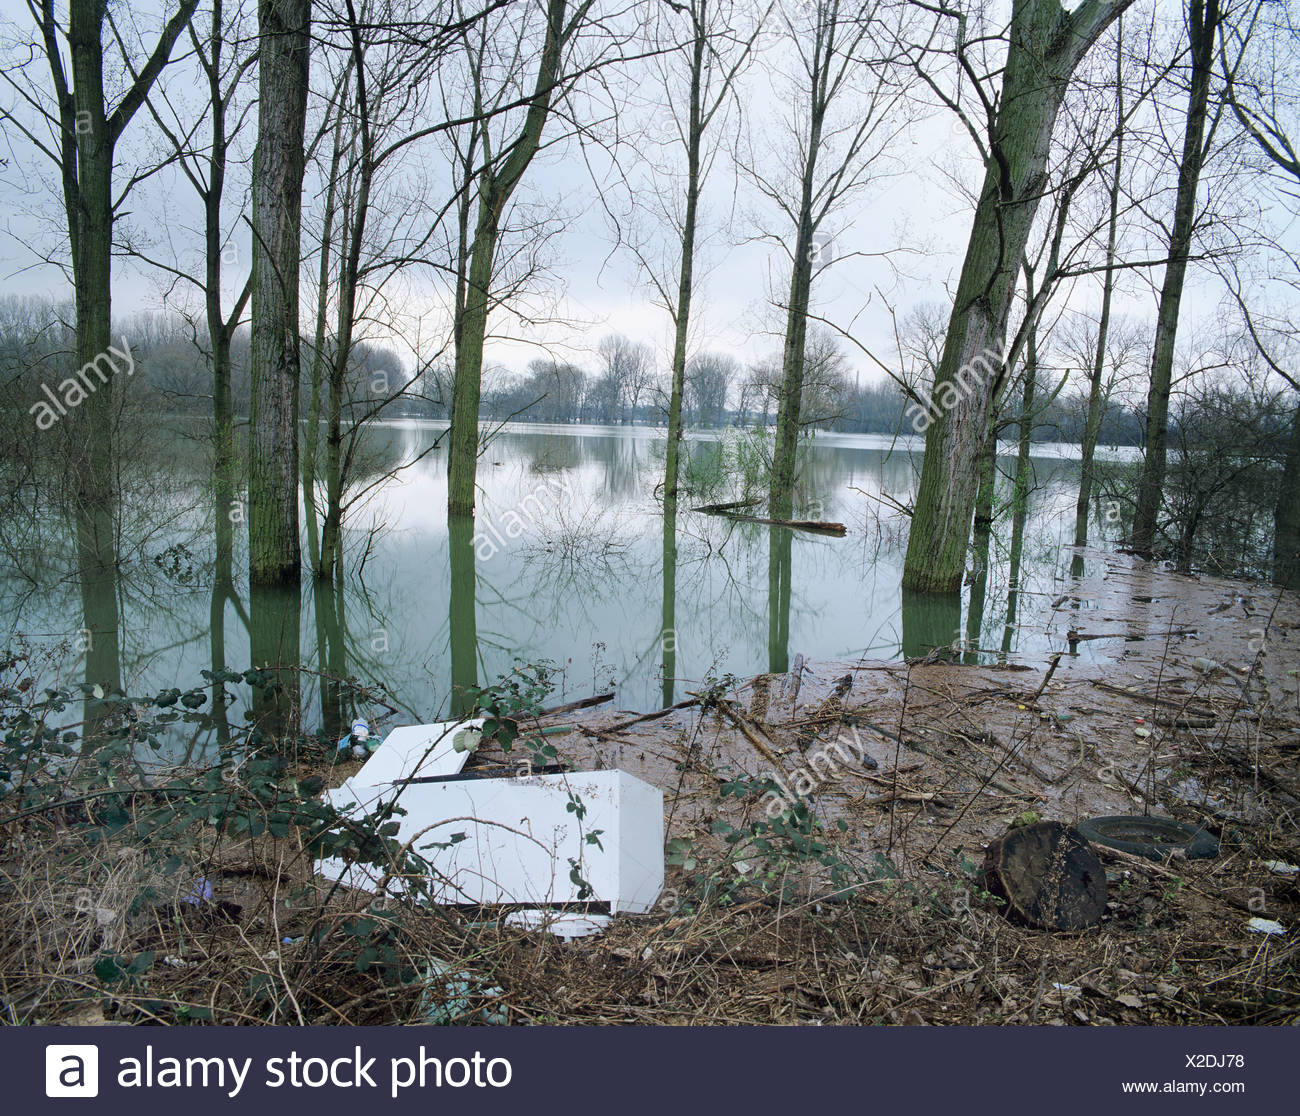 Refrigerator swept up in a flood plain, flotsam, flooding, CFC, CFCs Stock Photo